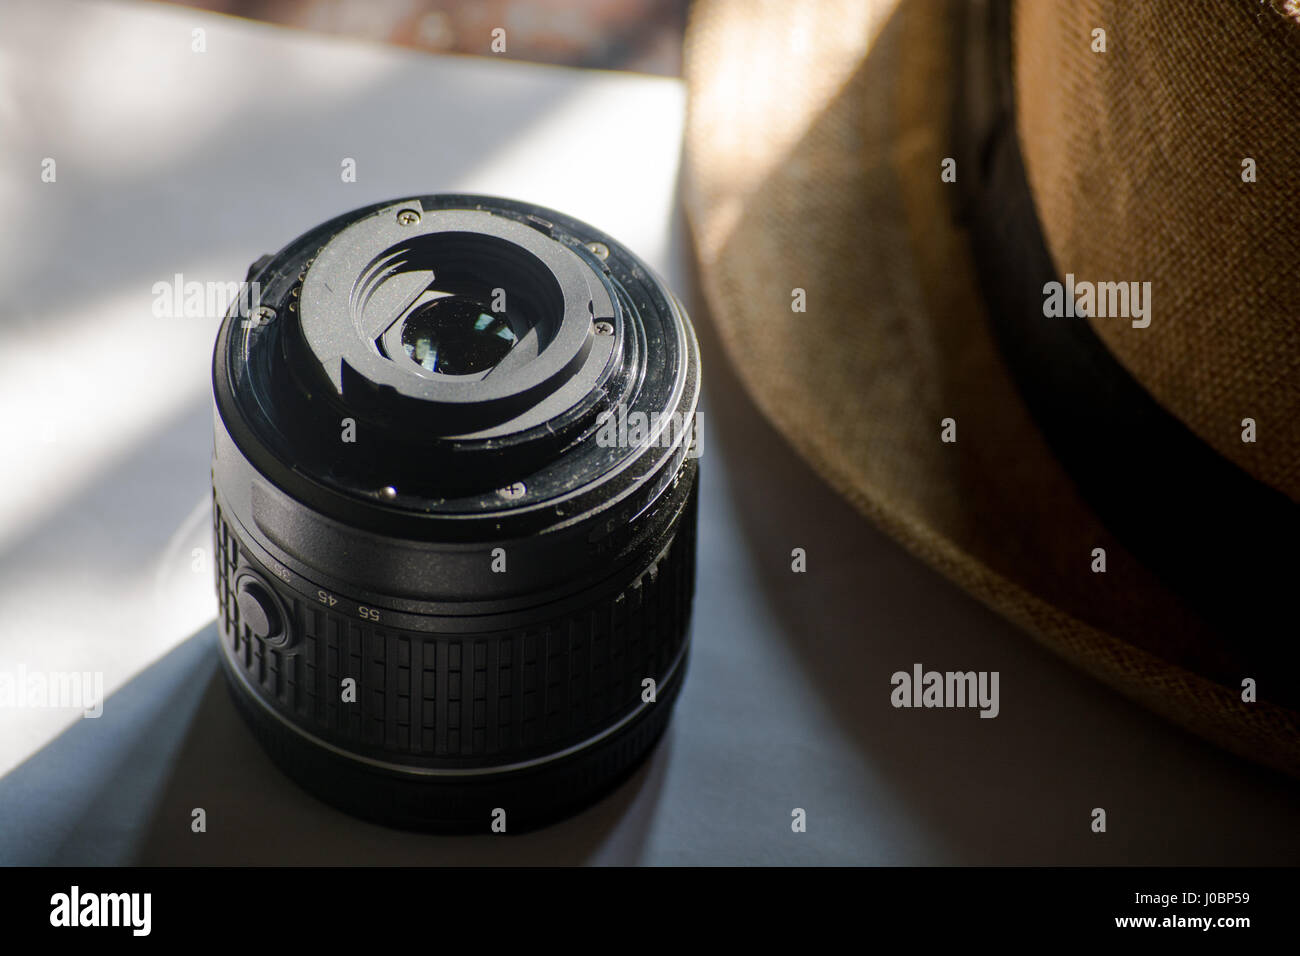 Dslr Camera Lens In Vintage Style Best For Wallpapers And Stock Photo Alamy